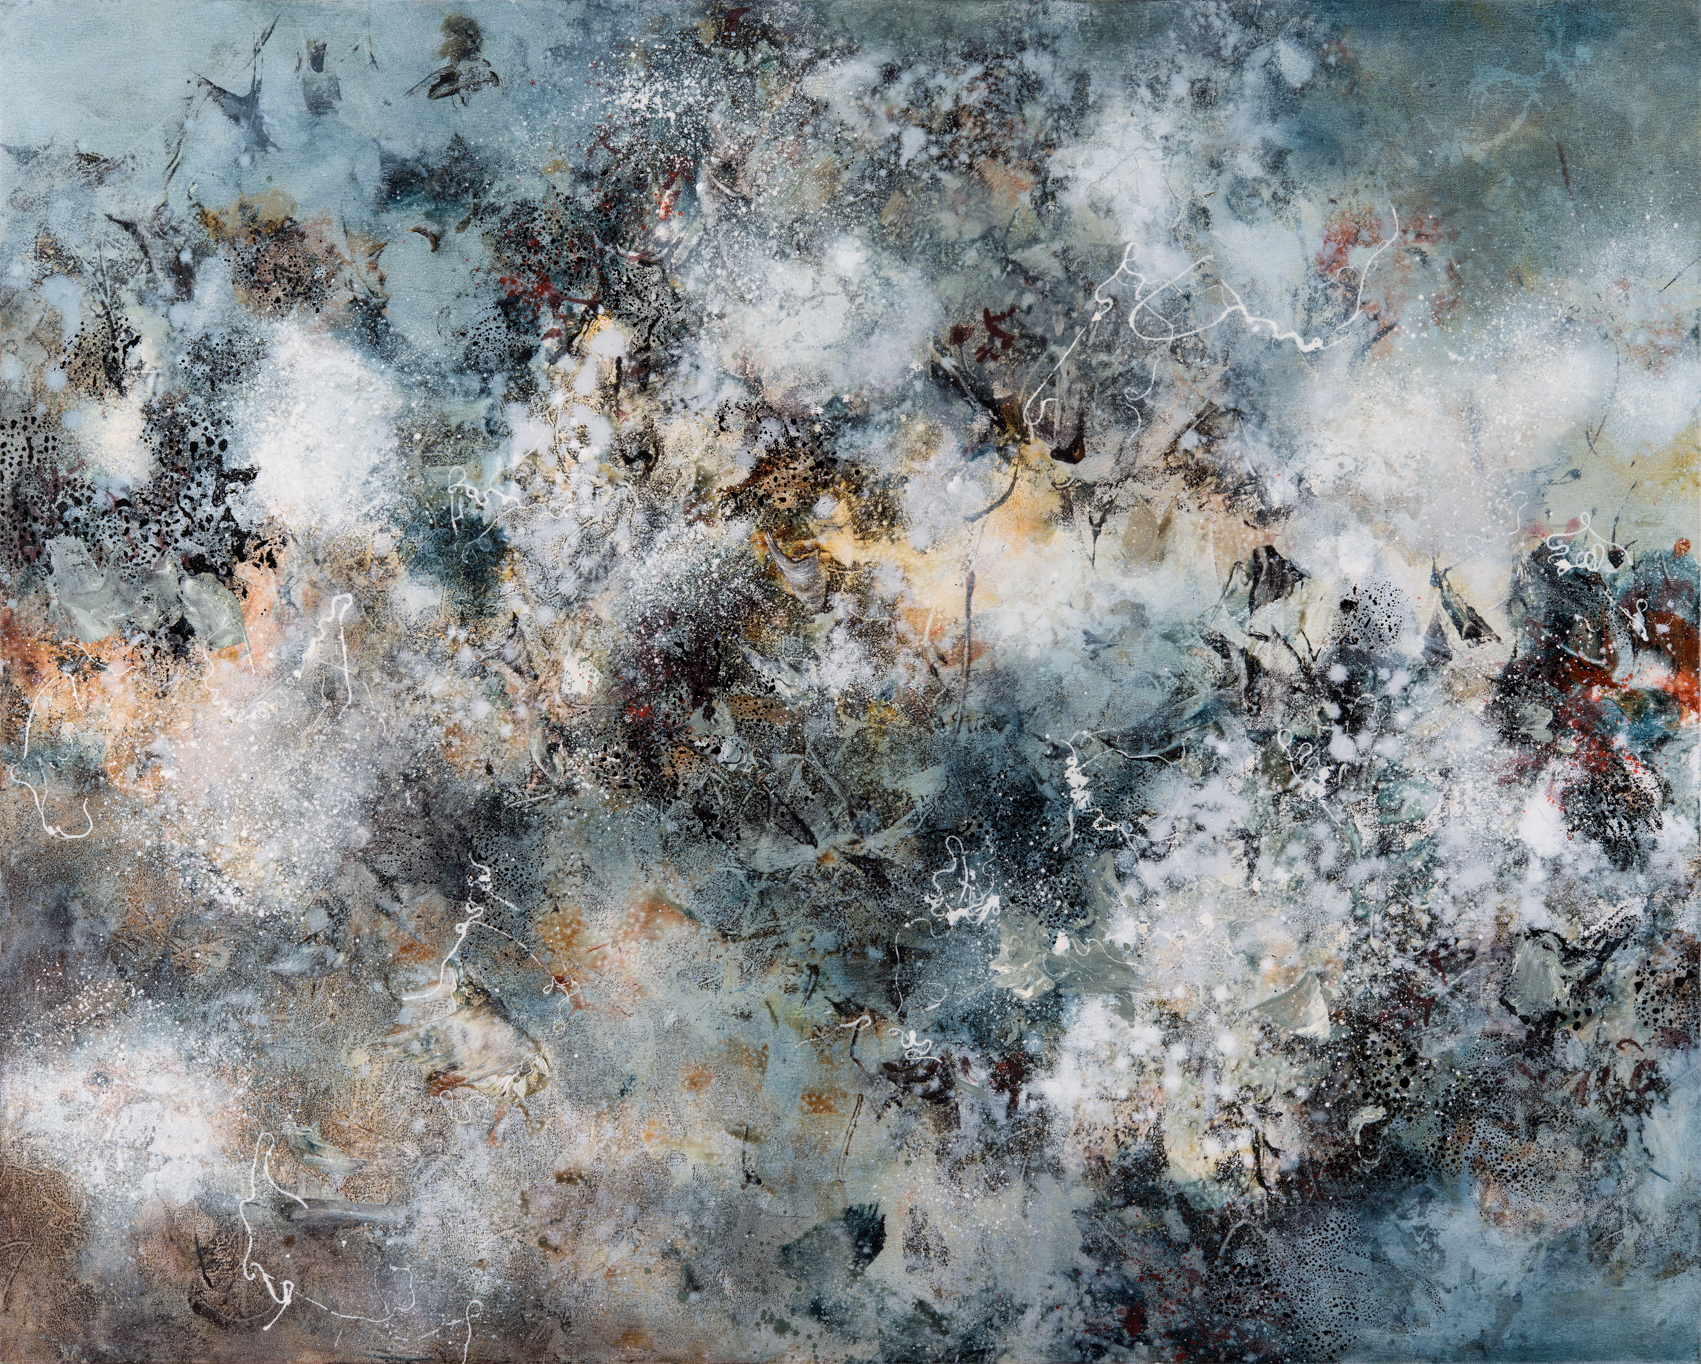 01_IoneParkinRWA,Turbulence,oil on canvas,102x127cm.jpg